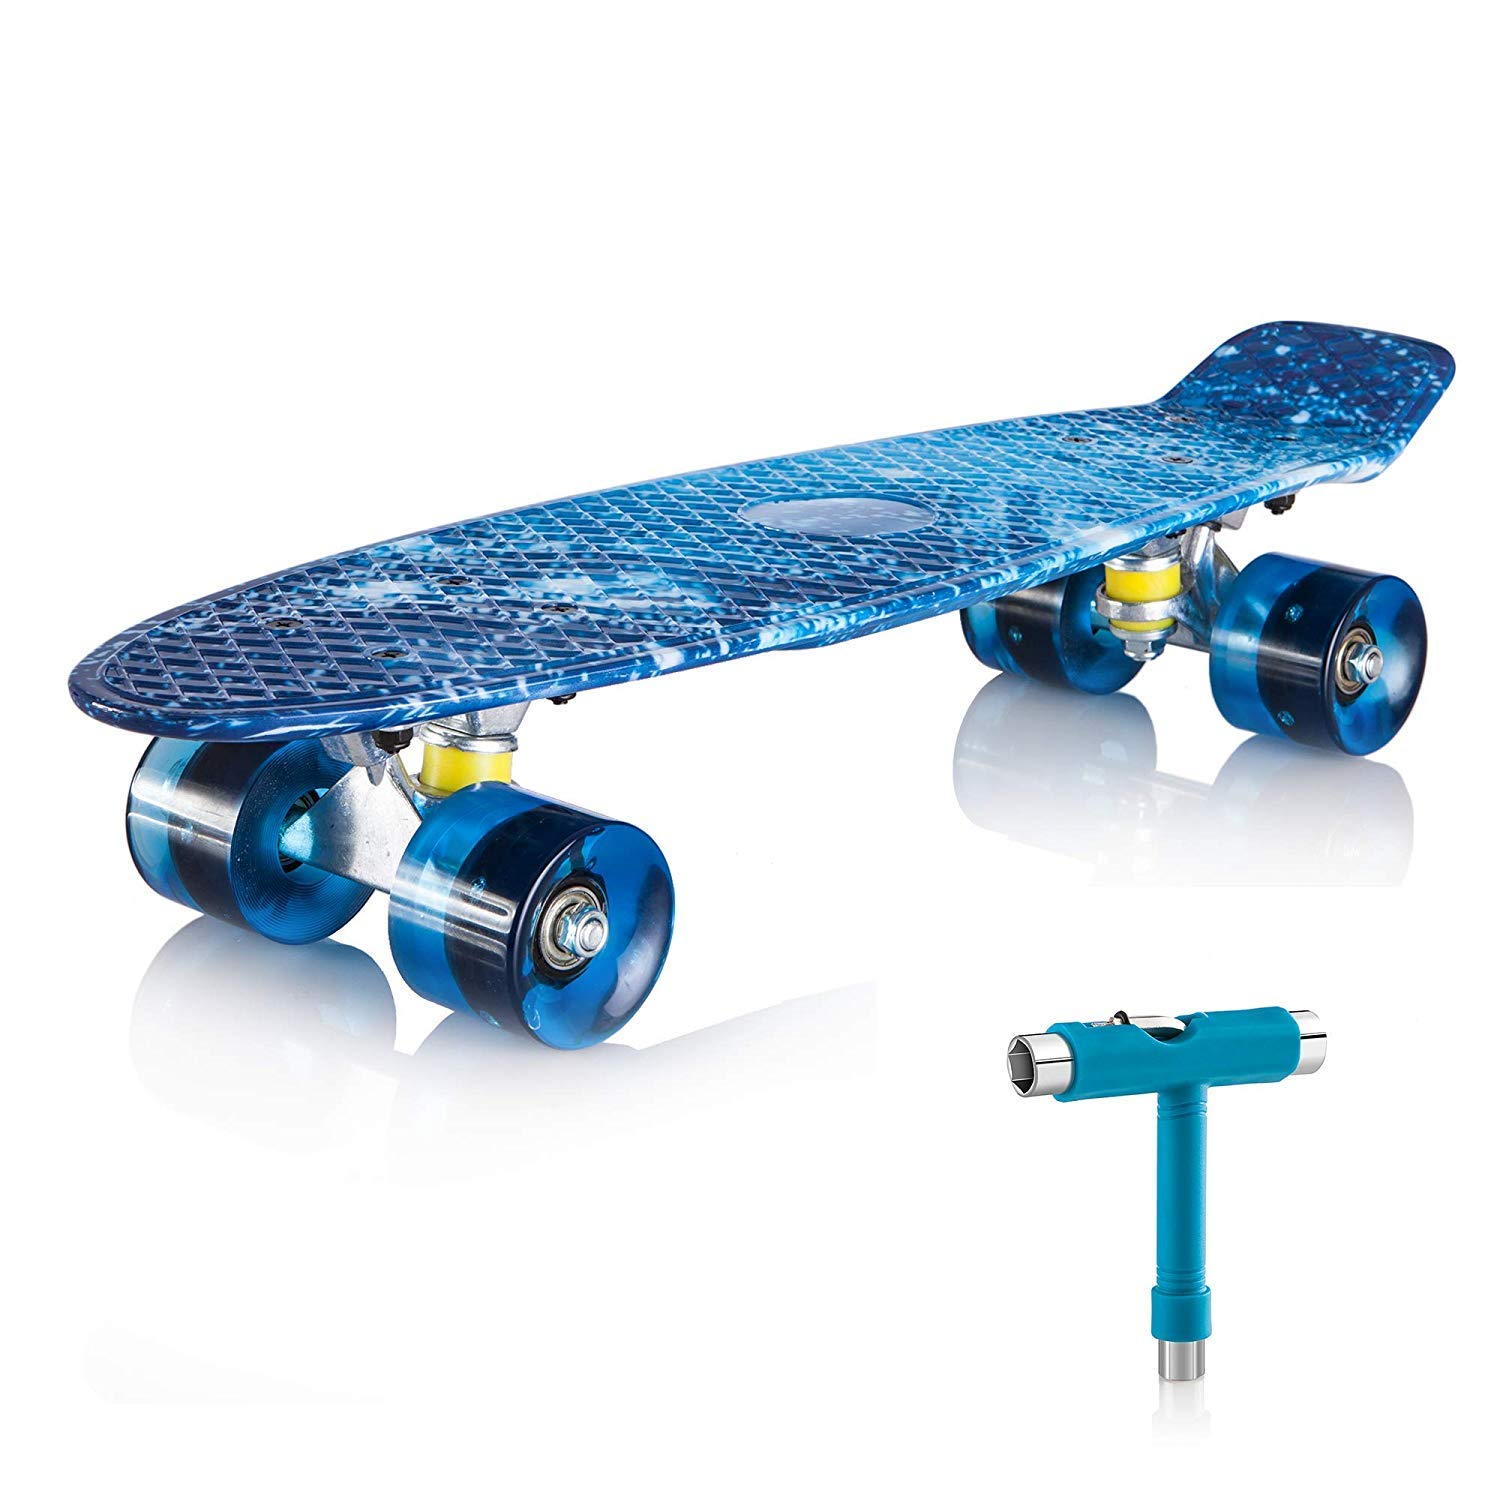 """Newdora 22"""" Complete Skateboard Cruiser with Colorful LED Light Up Wheels for Kids, Boys, Girls, Youths, Beginners"""